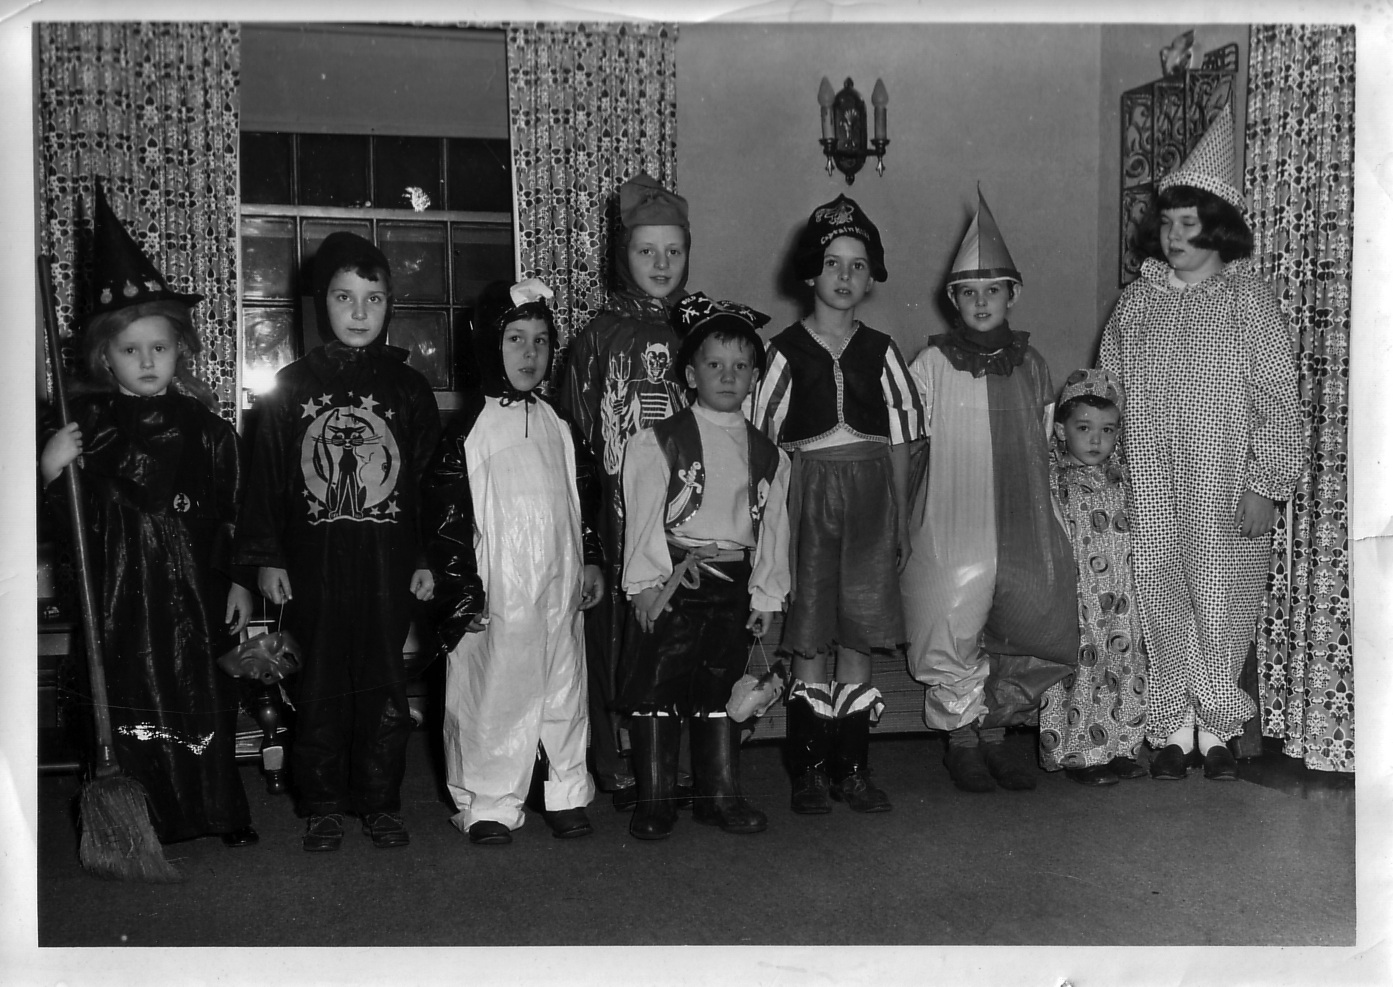 Vintage costumes the long way home